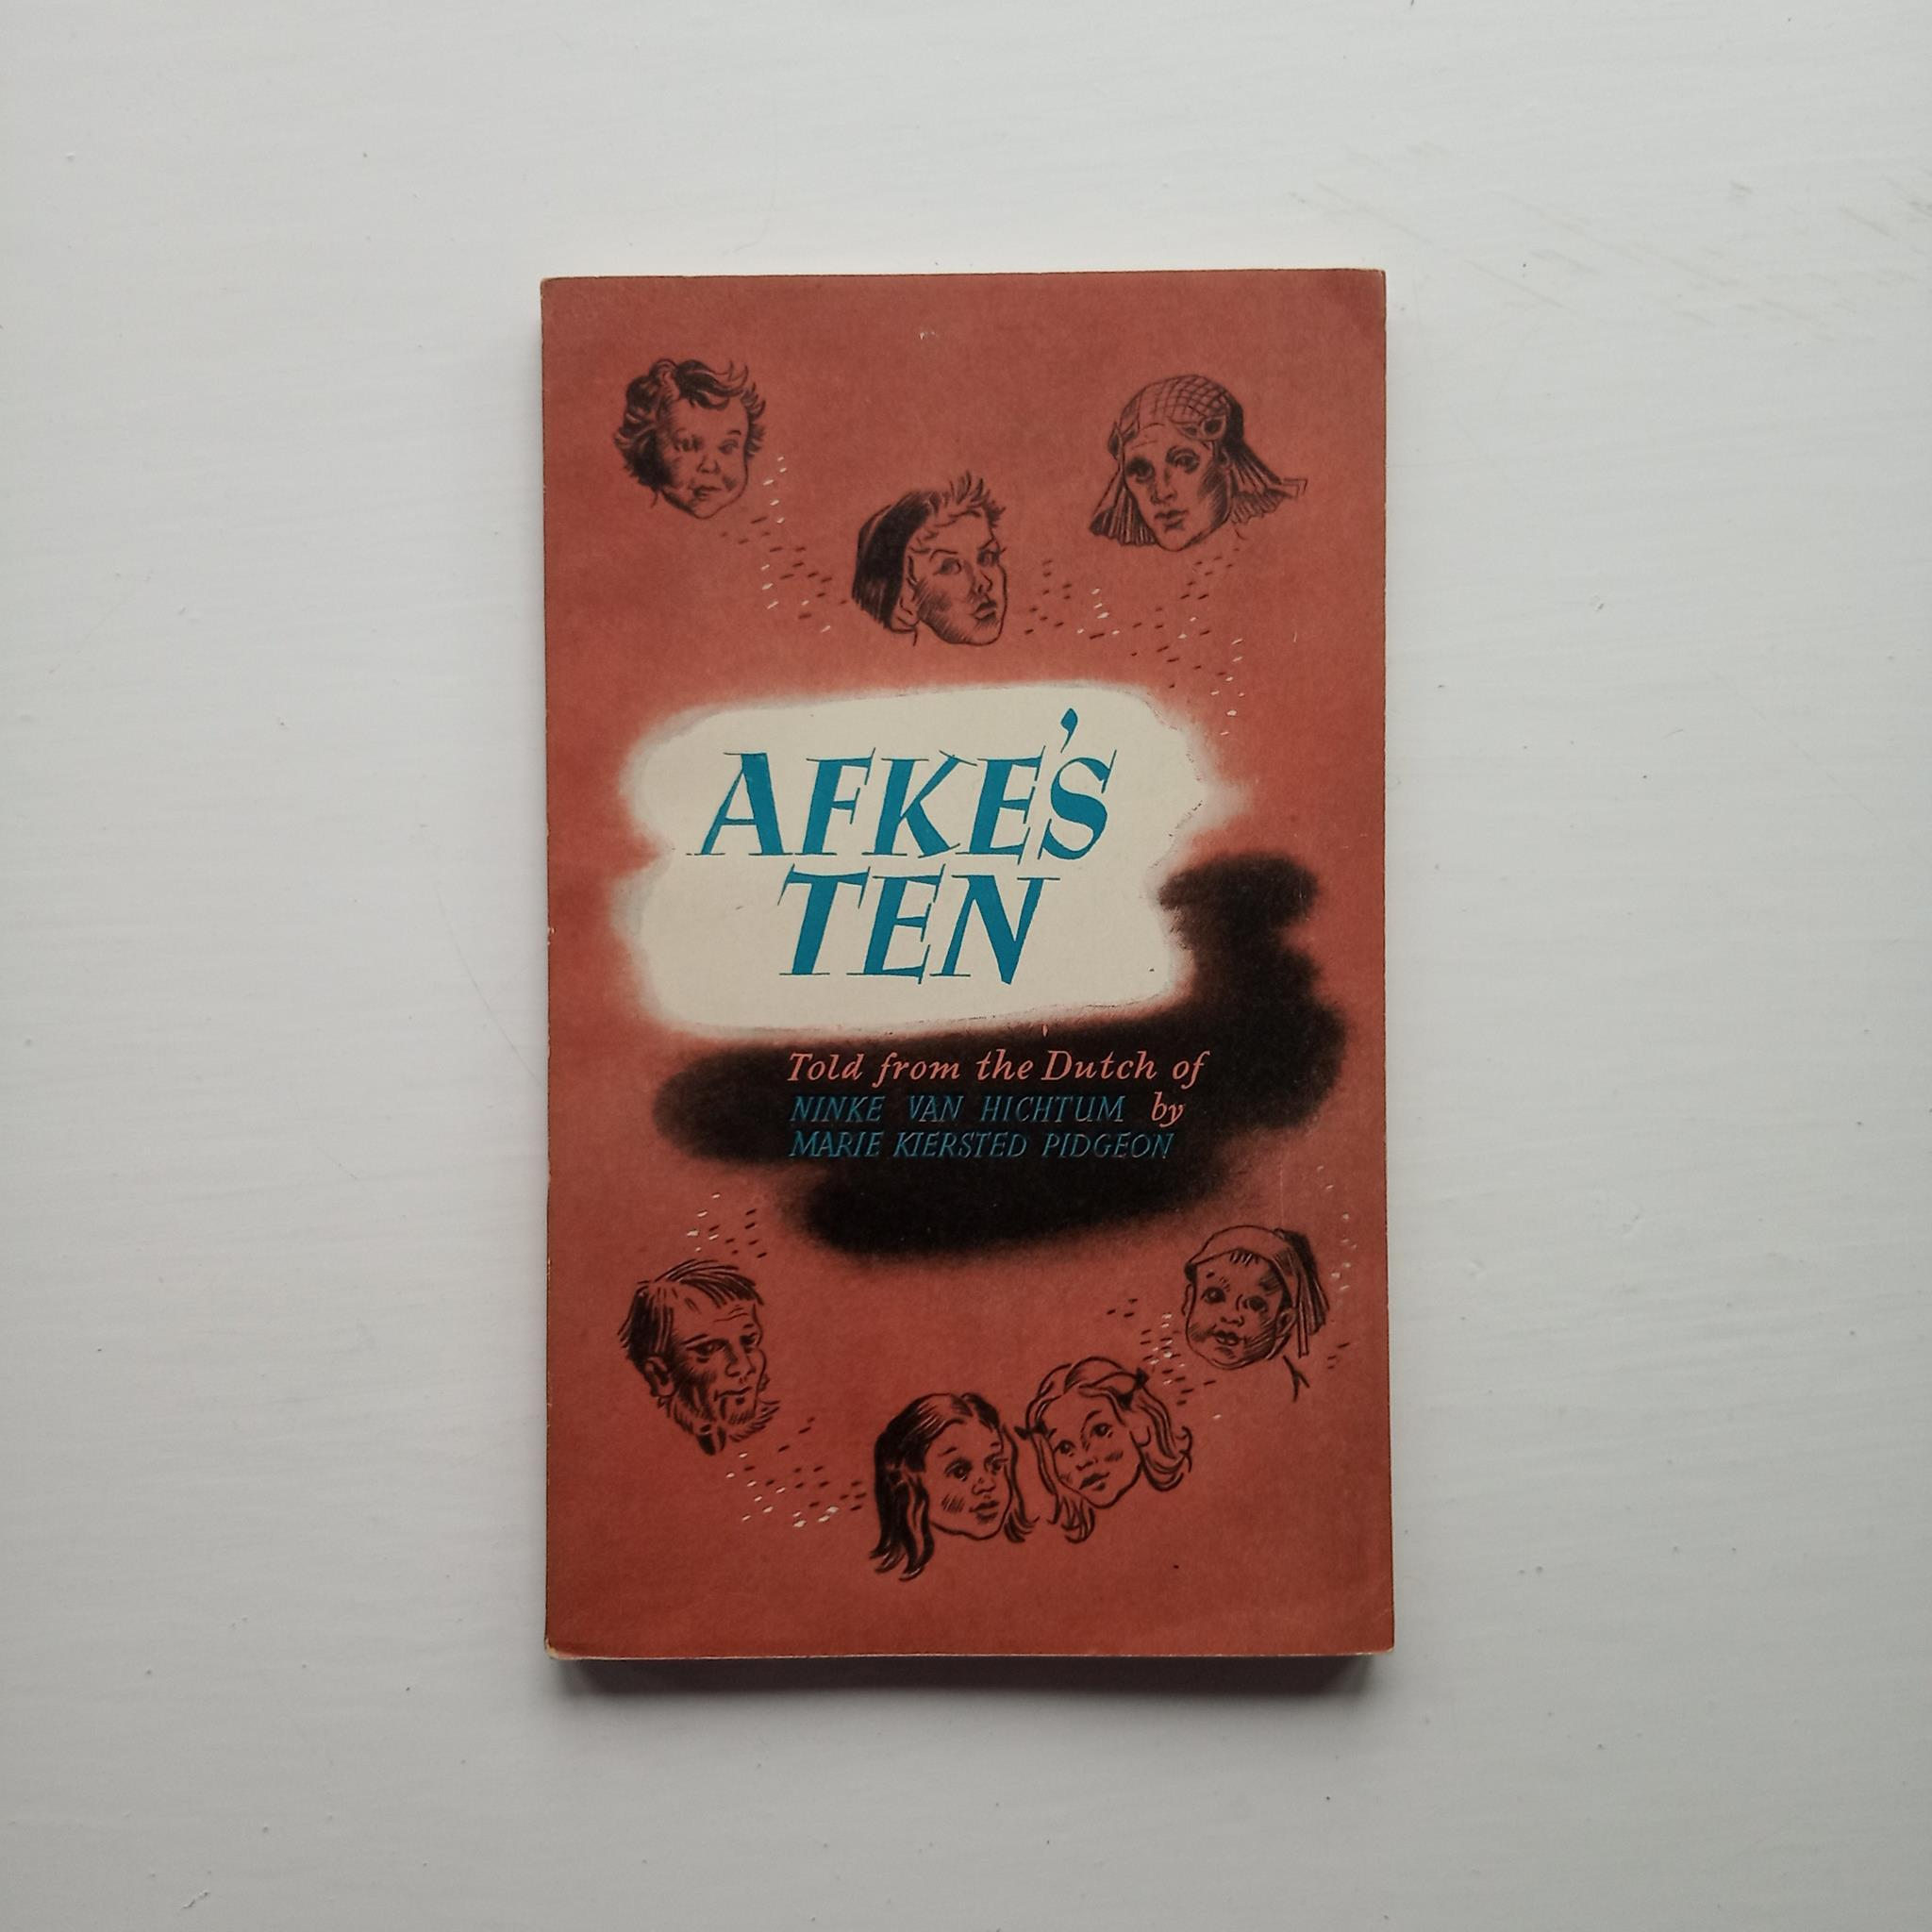 Afke's Ten by Ninke Van Hichtum